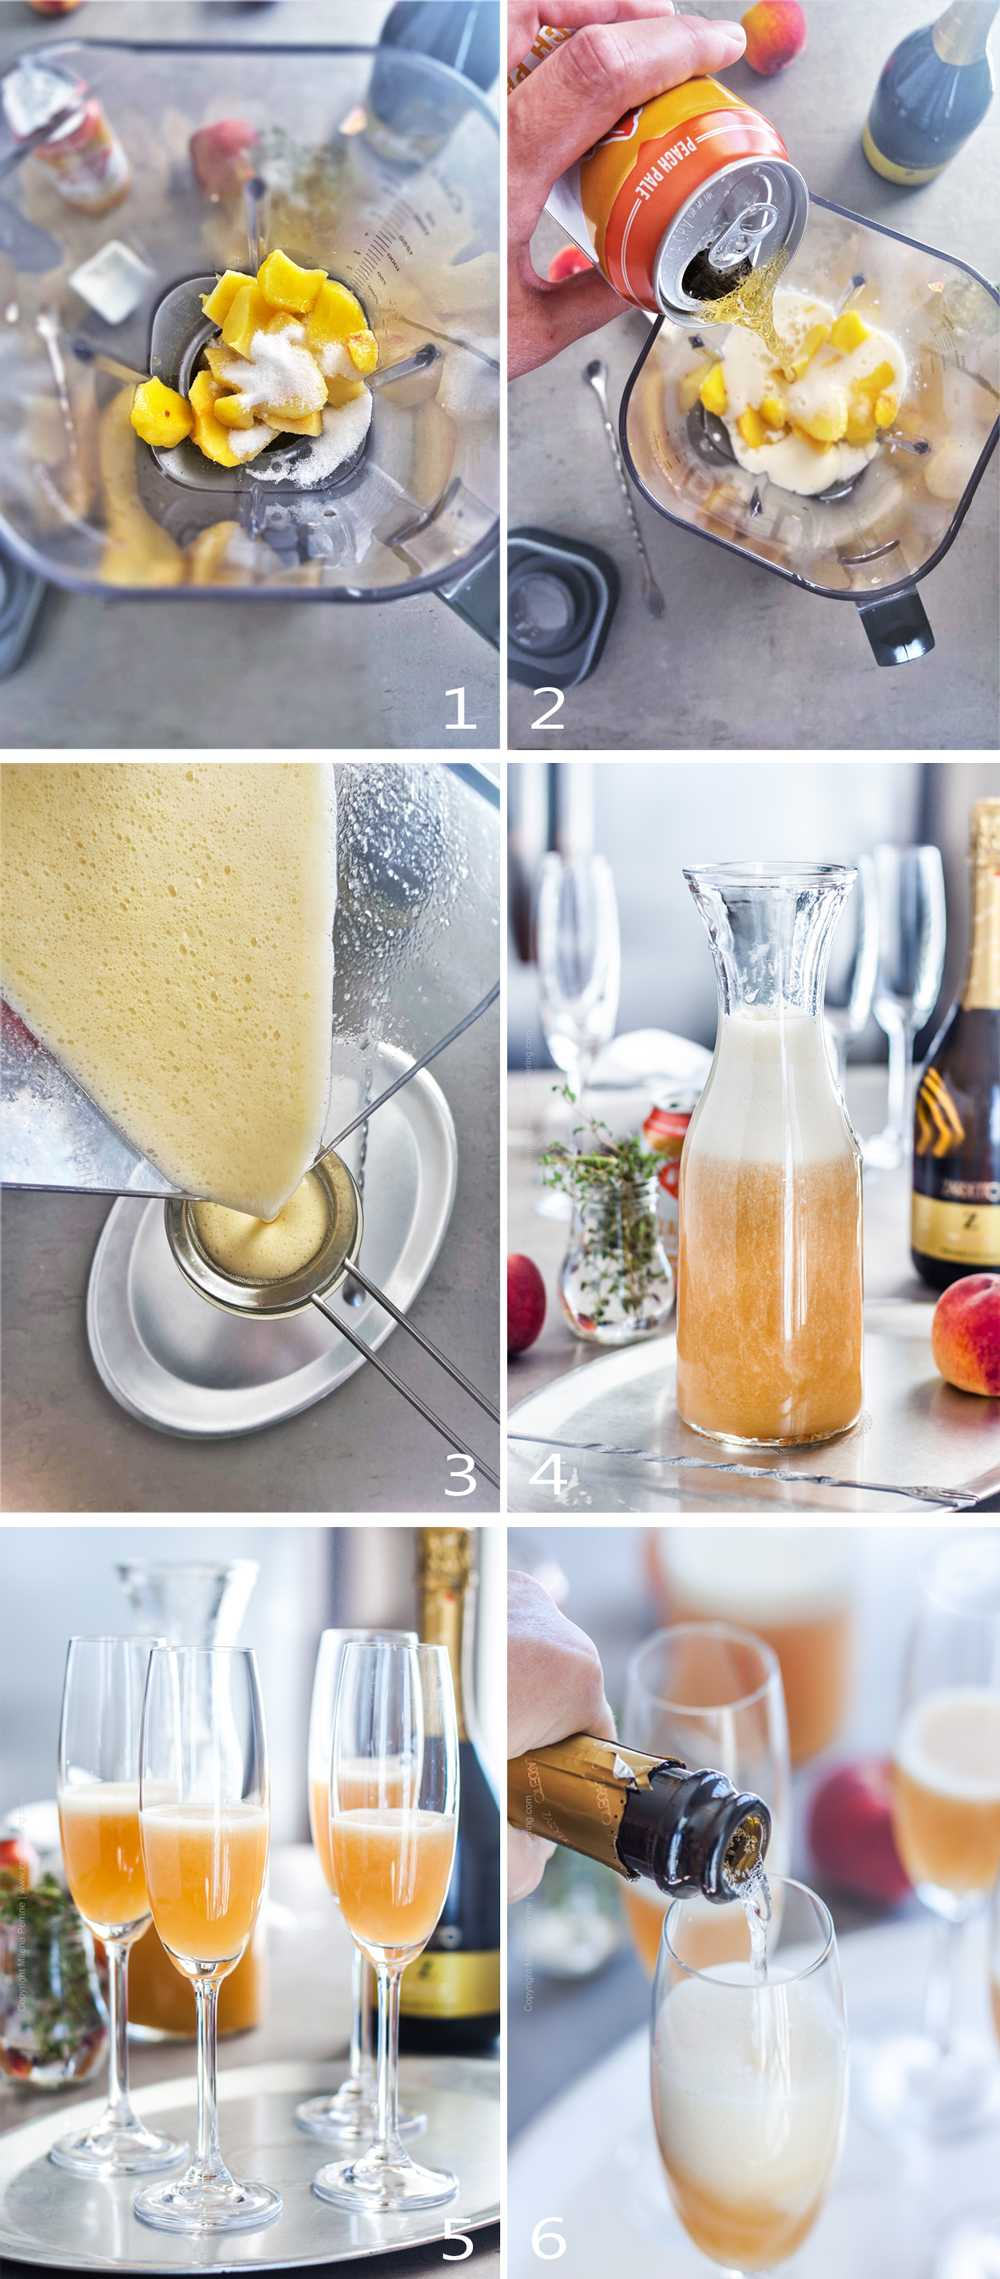 Step by step how to make a peach bellini with fresh peaches.